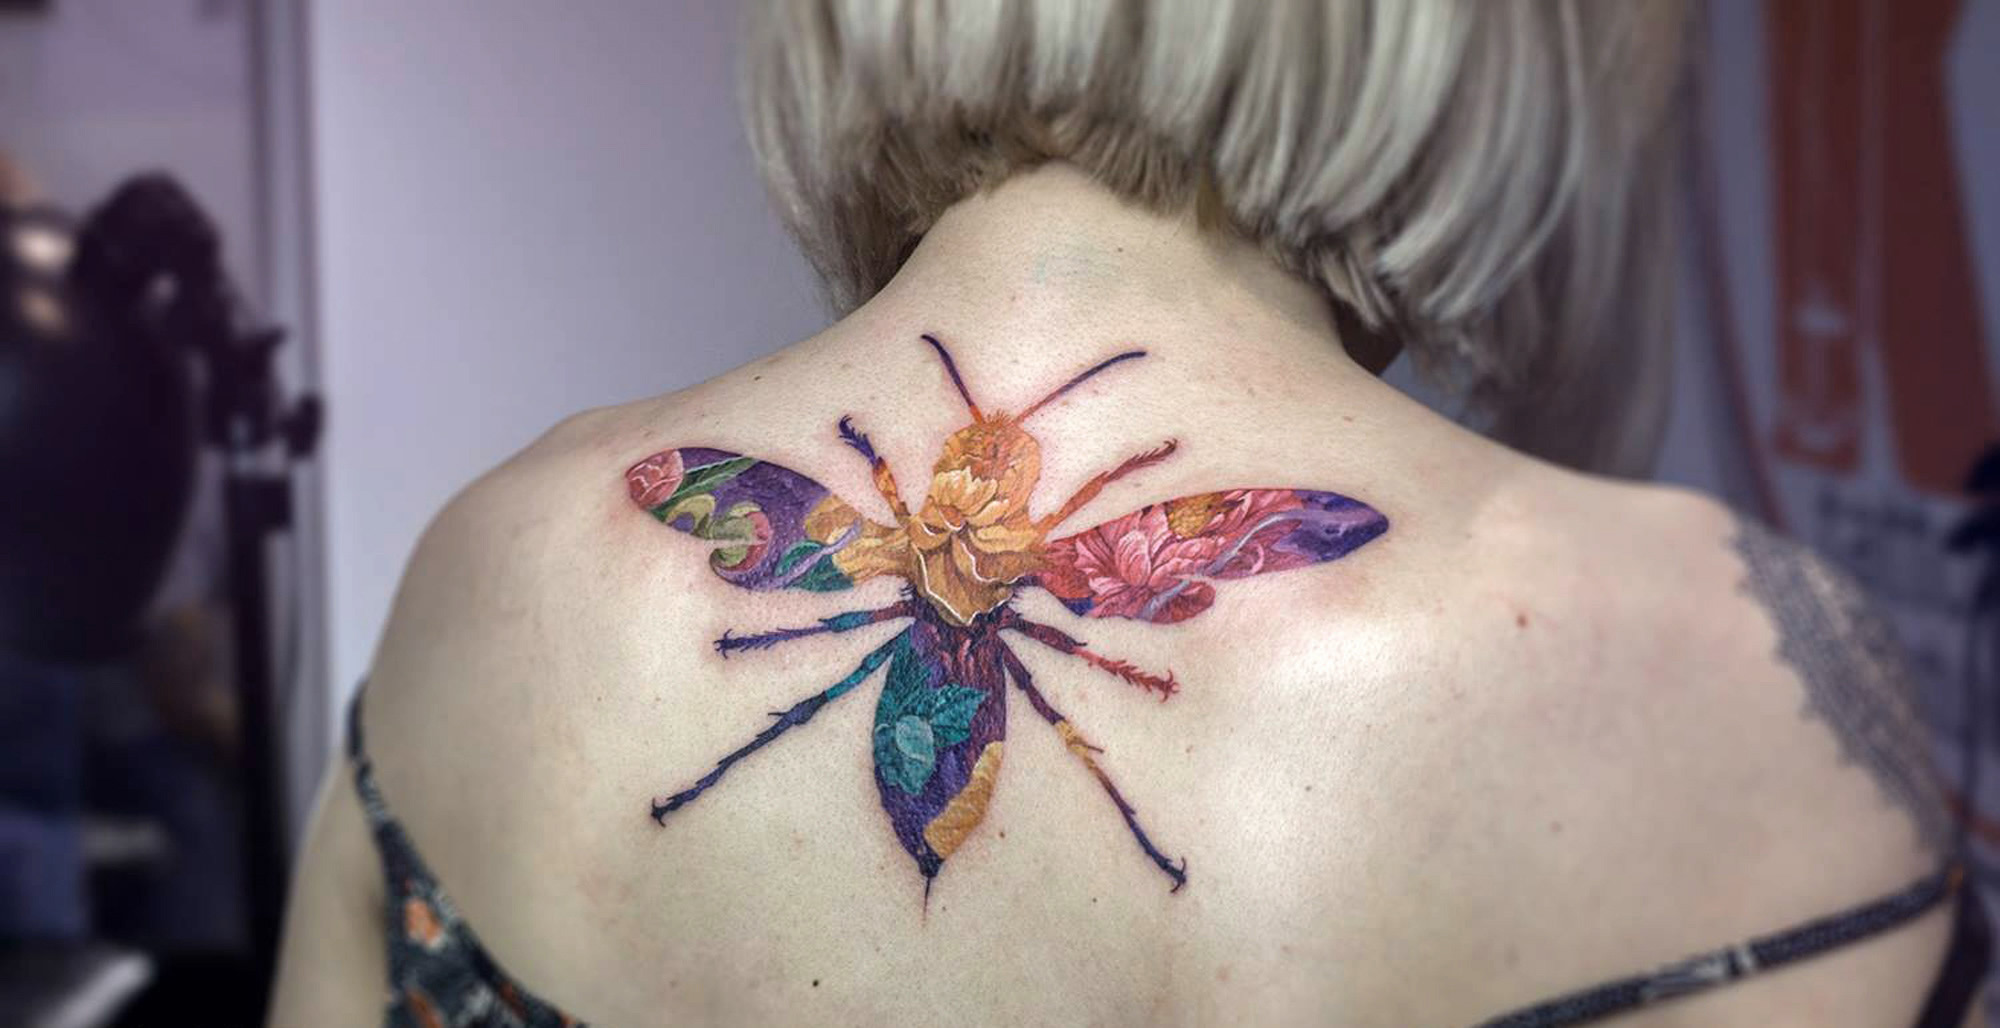 ouble exposure bug tattoo by andrey lukovnikov